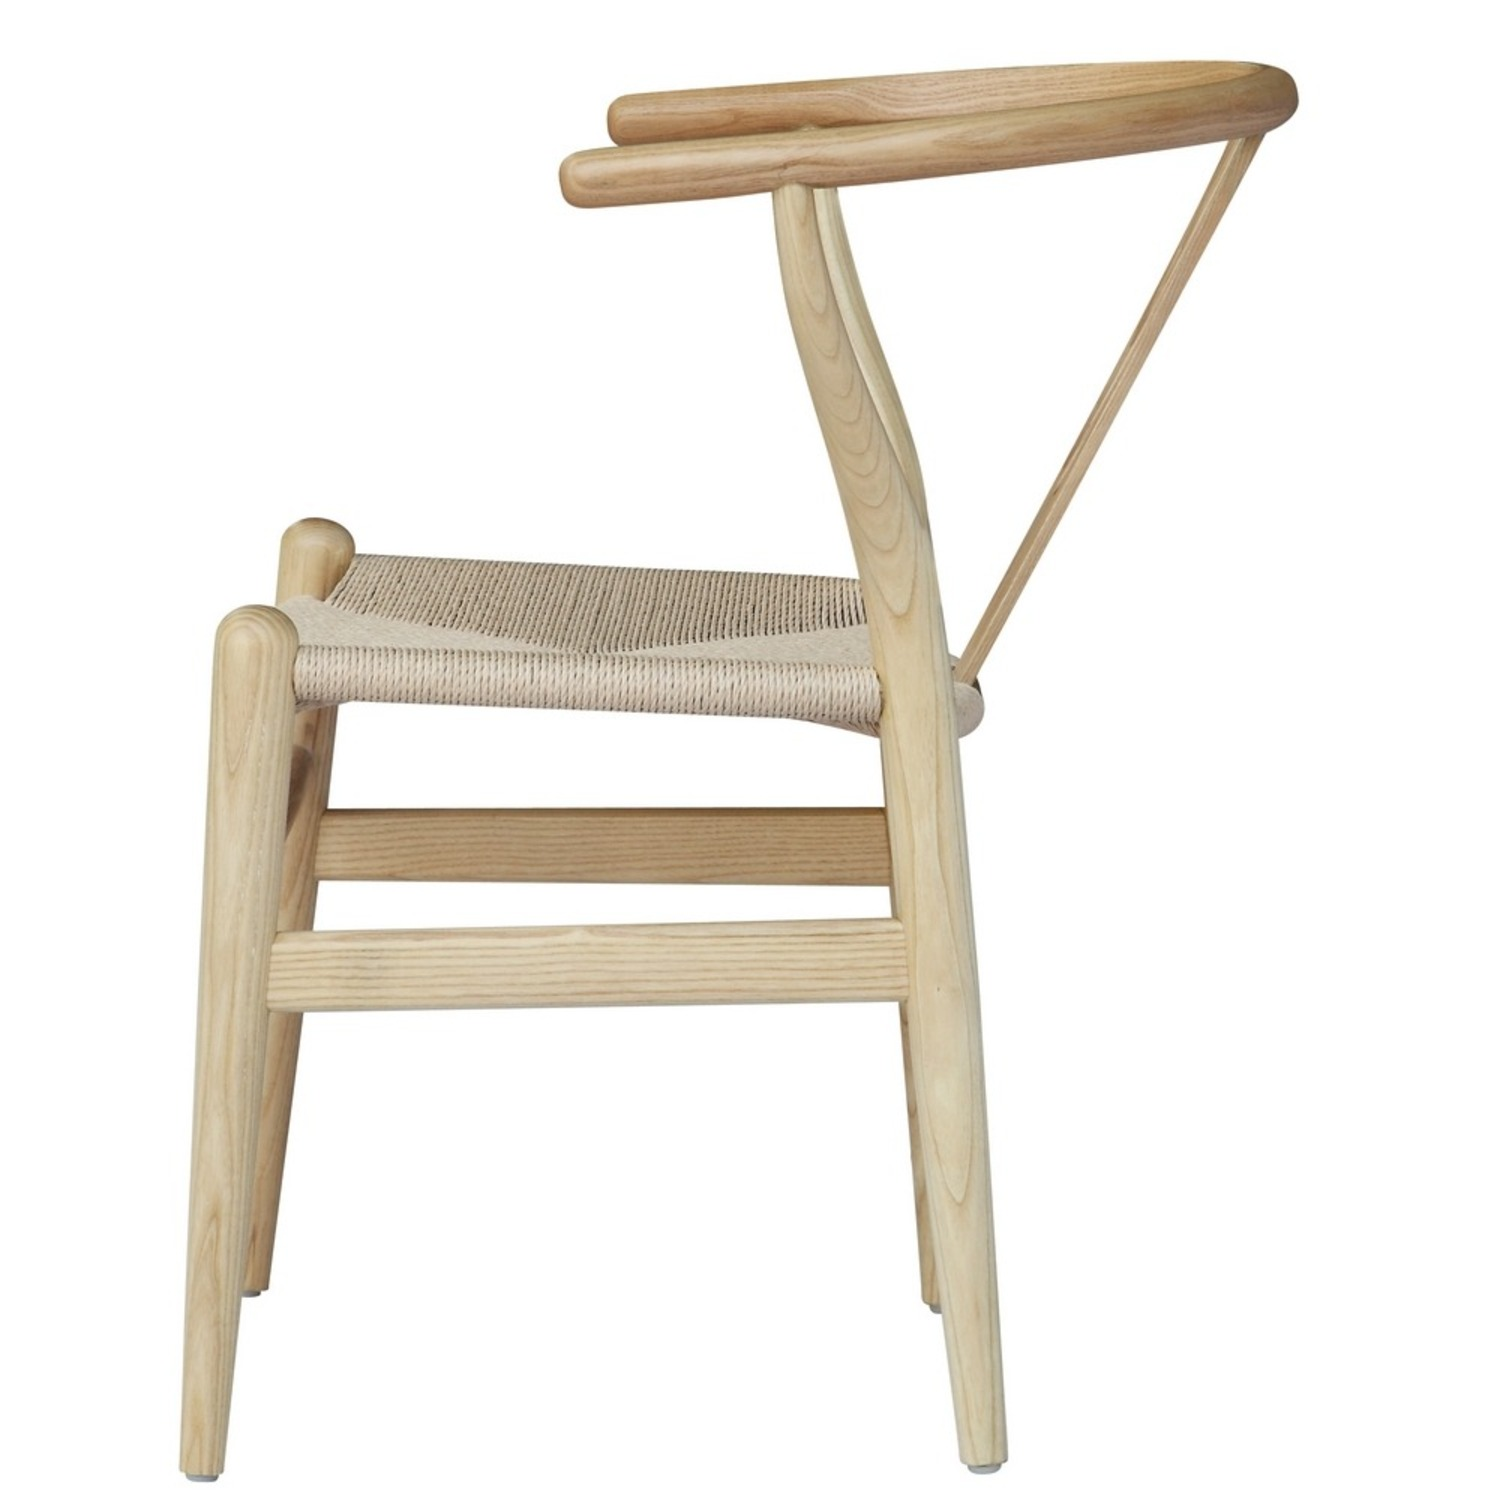 Dining Chair In Natural Frame & Natural Hemp Seat - image-3